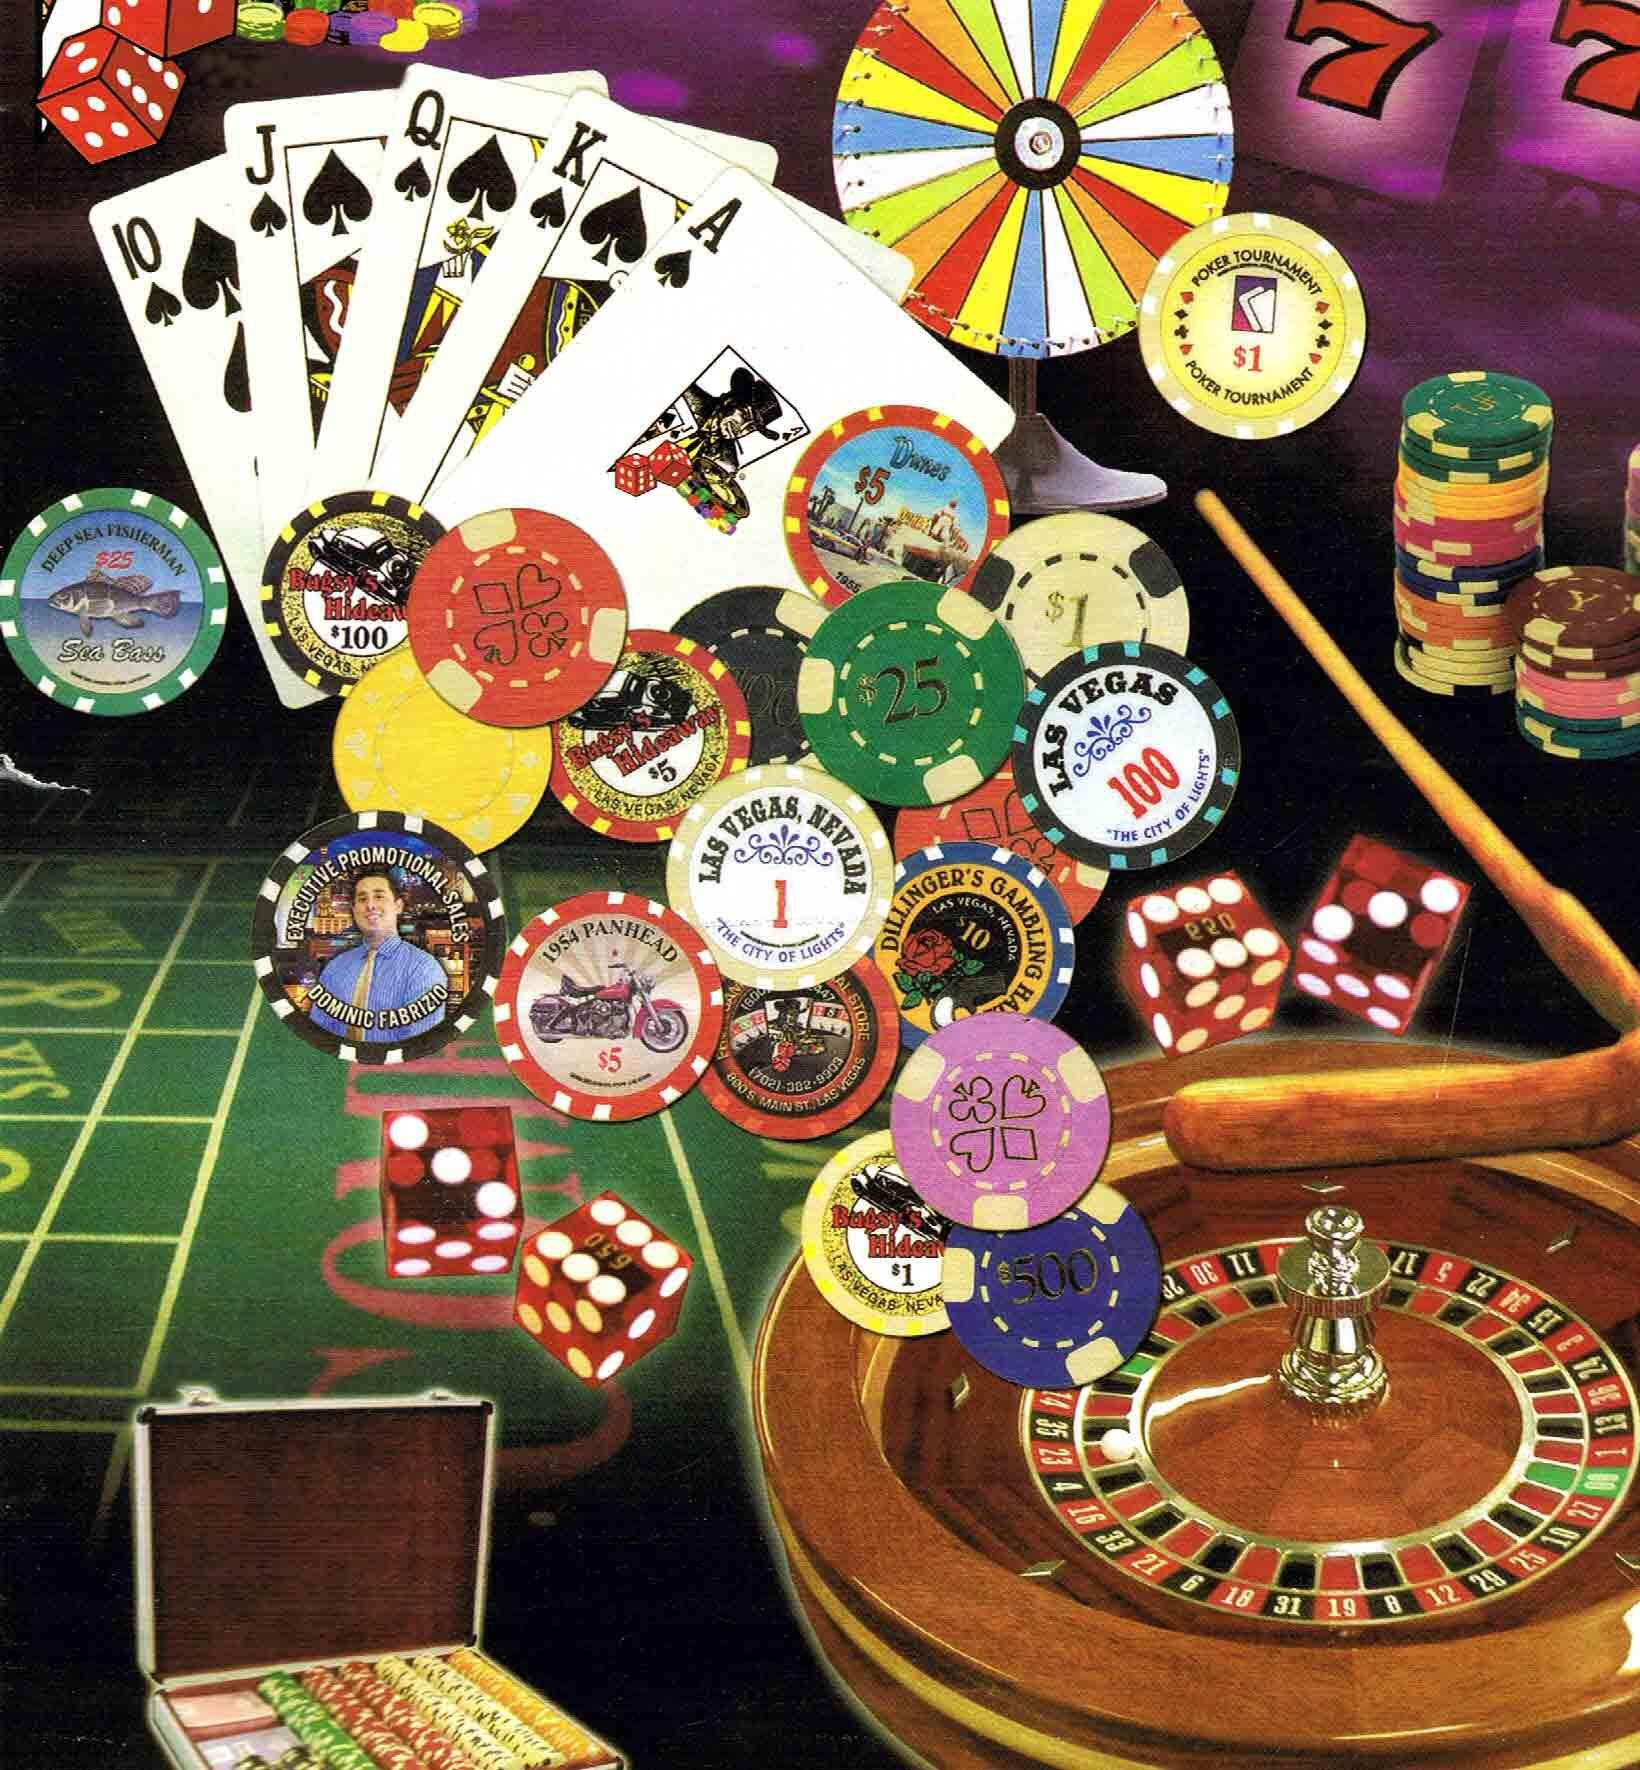 Play all games of casino online and win cash! Play with